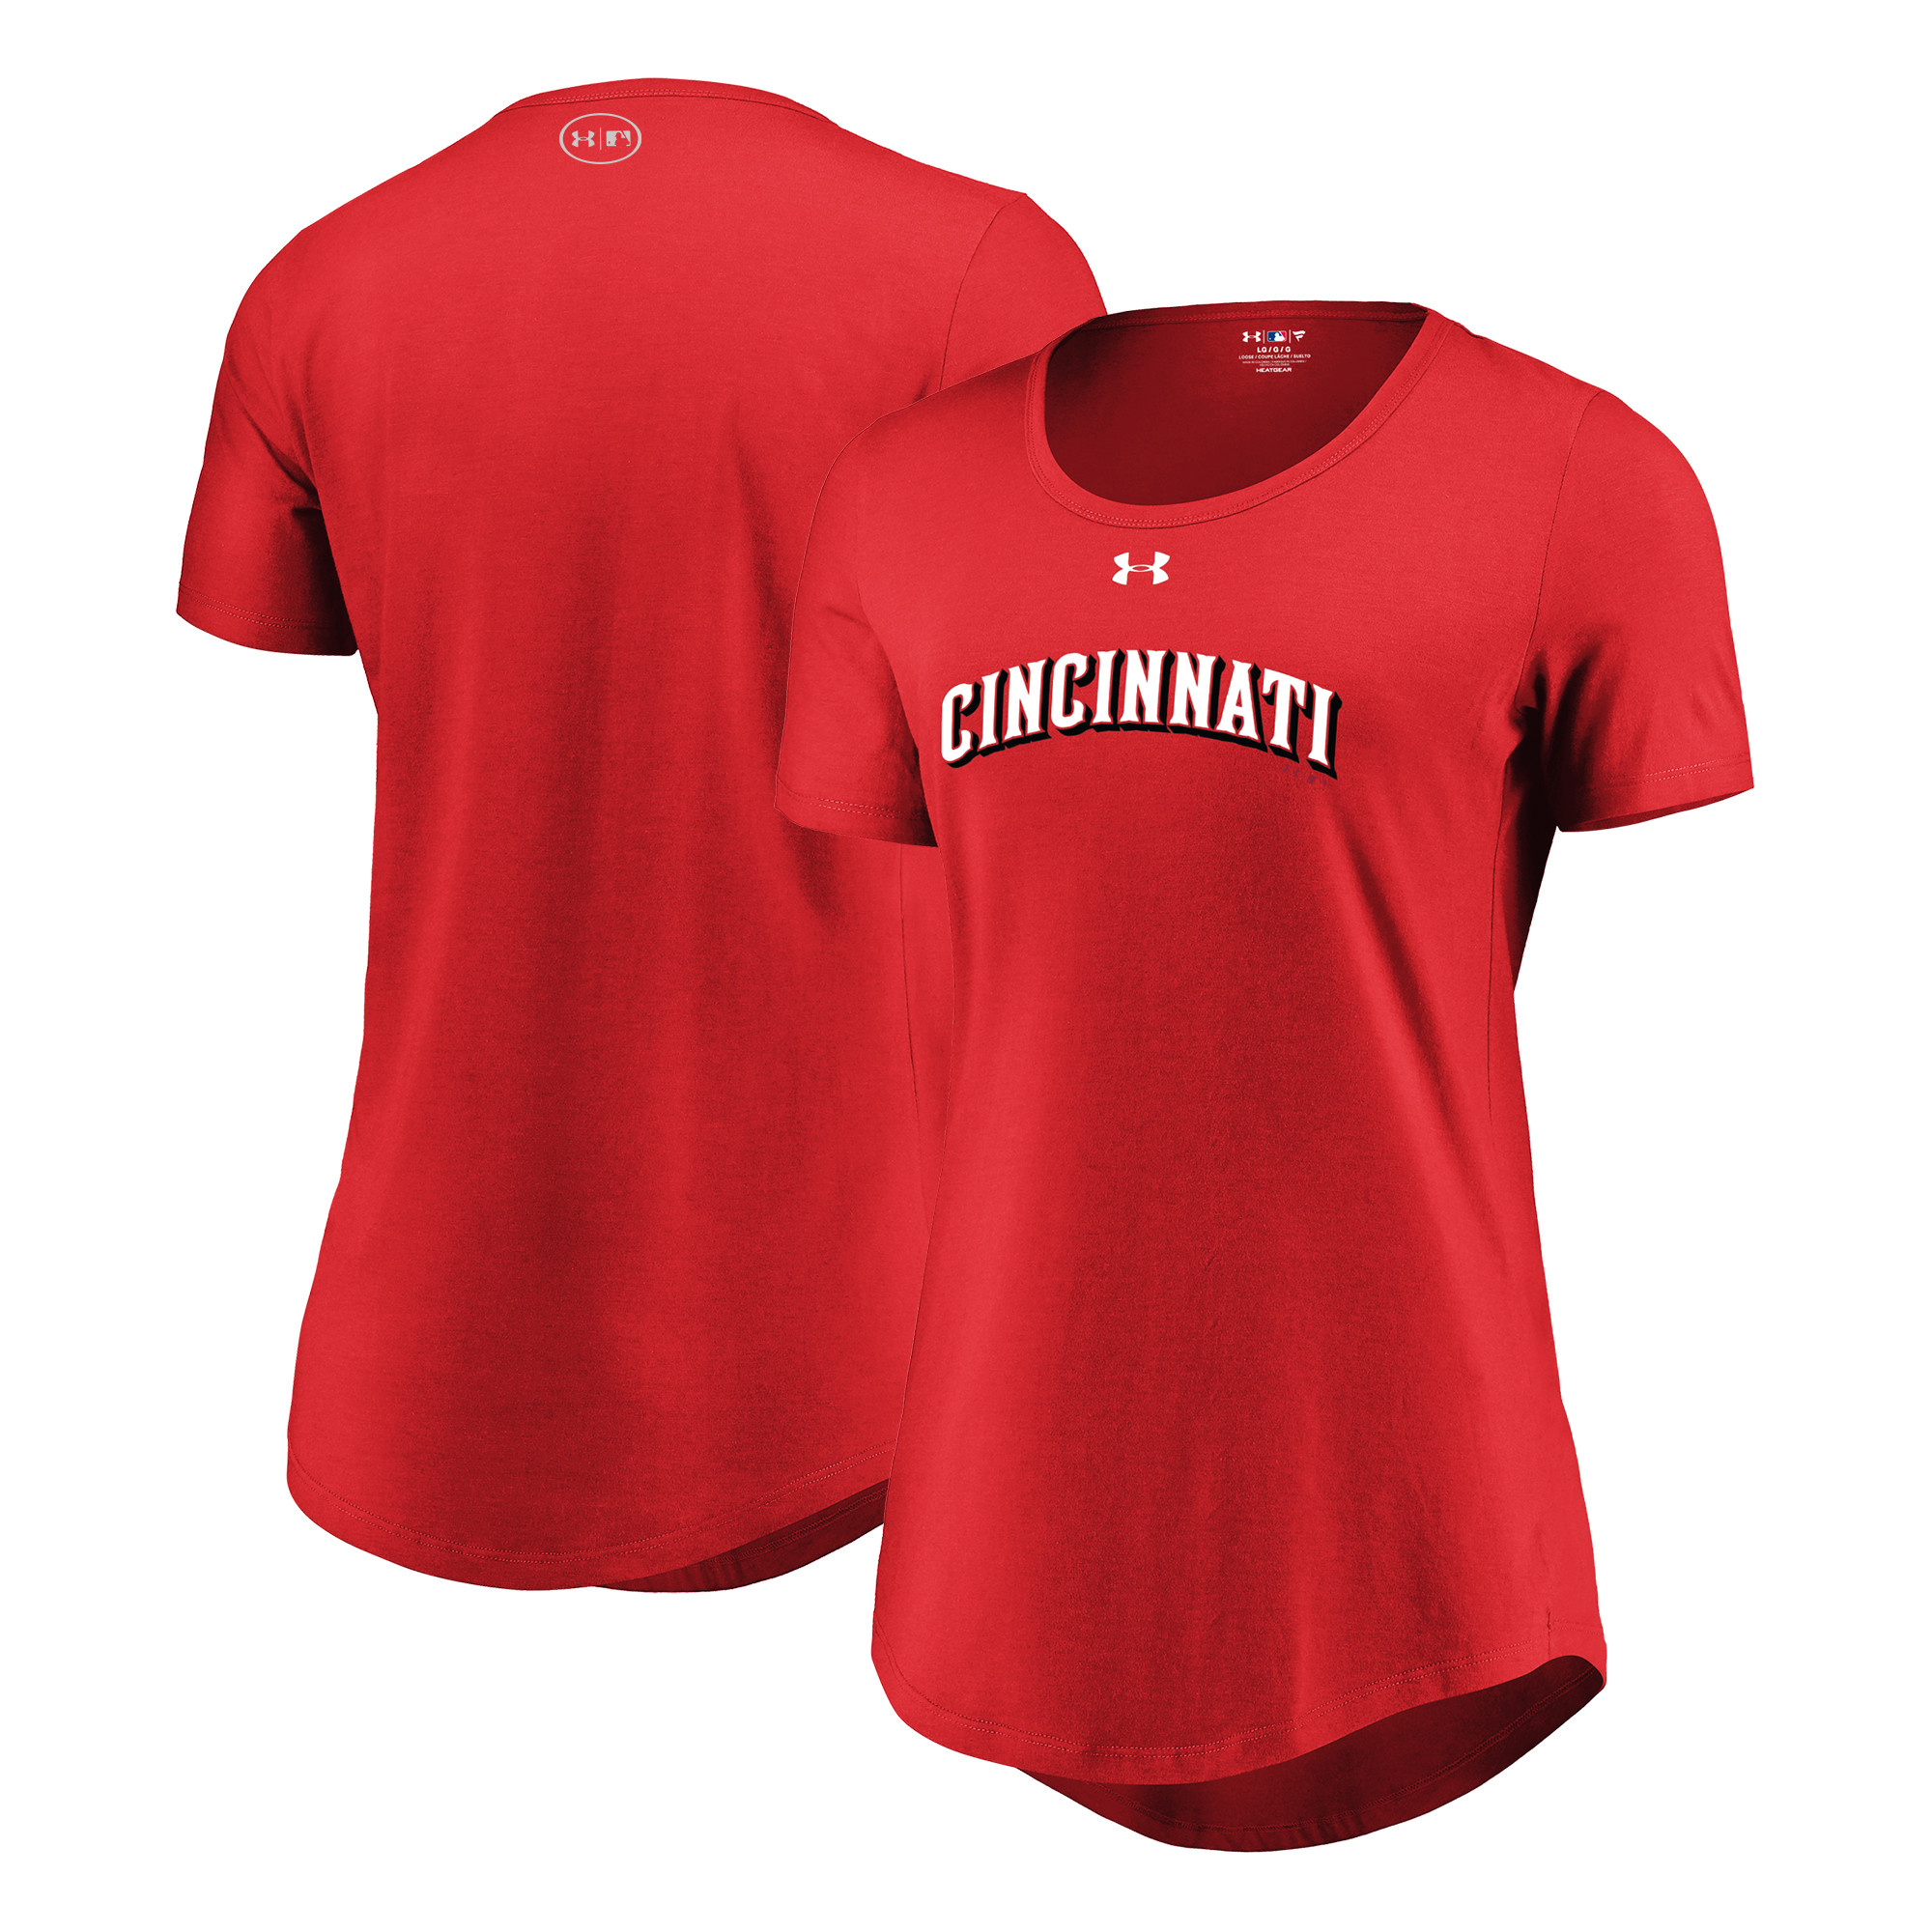 Cincinnati Reds Under Armour Women's Passion Road Team Font Scoop Performance Tri-Blend T-Shirt - Red